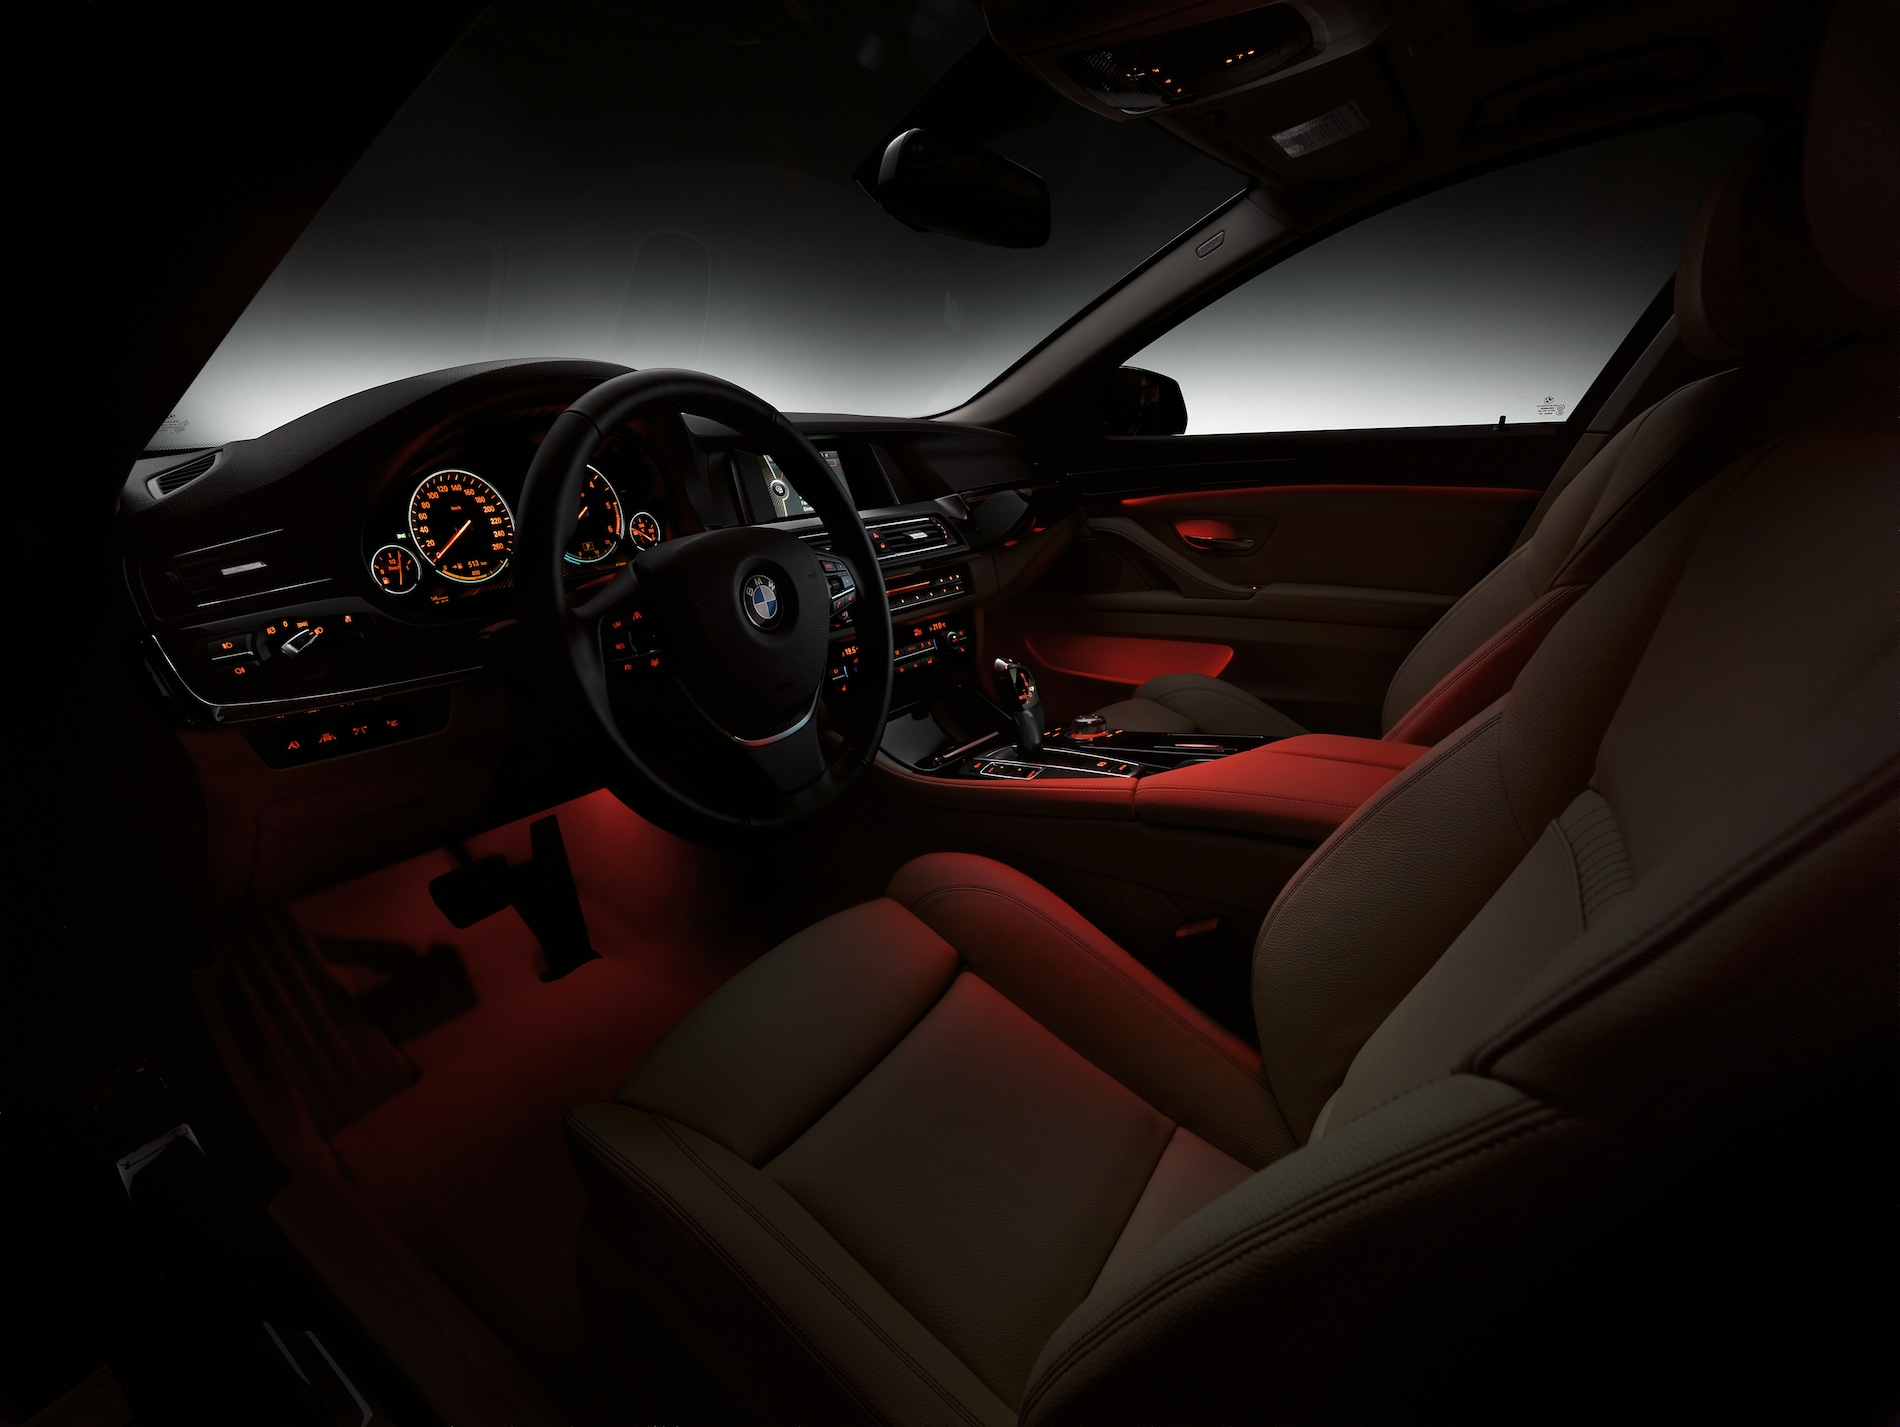 2014 f10 has footwell ambient lighting will other models for Interieur verlichting auto